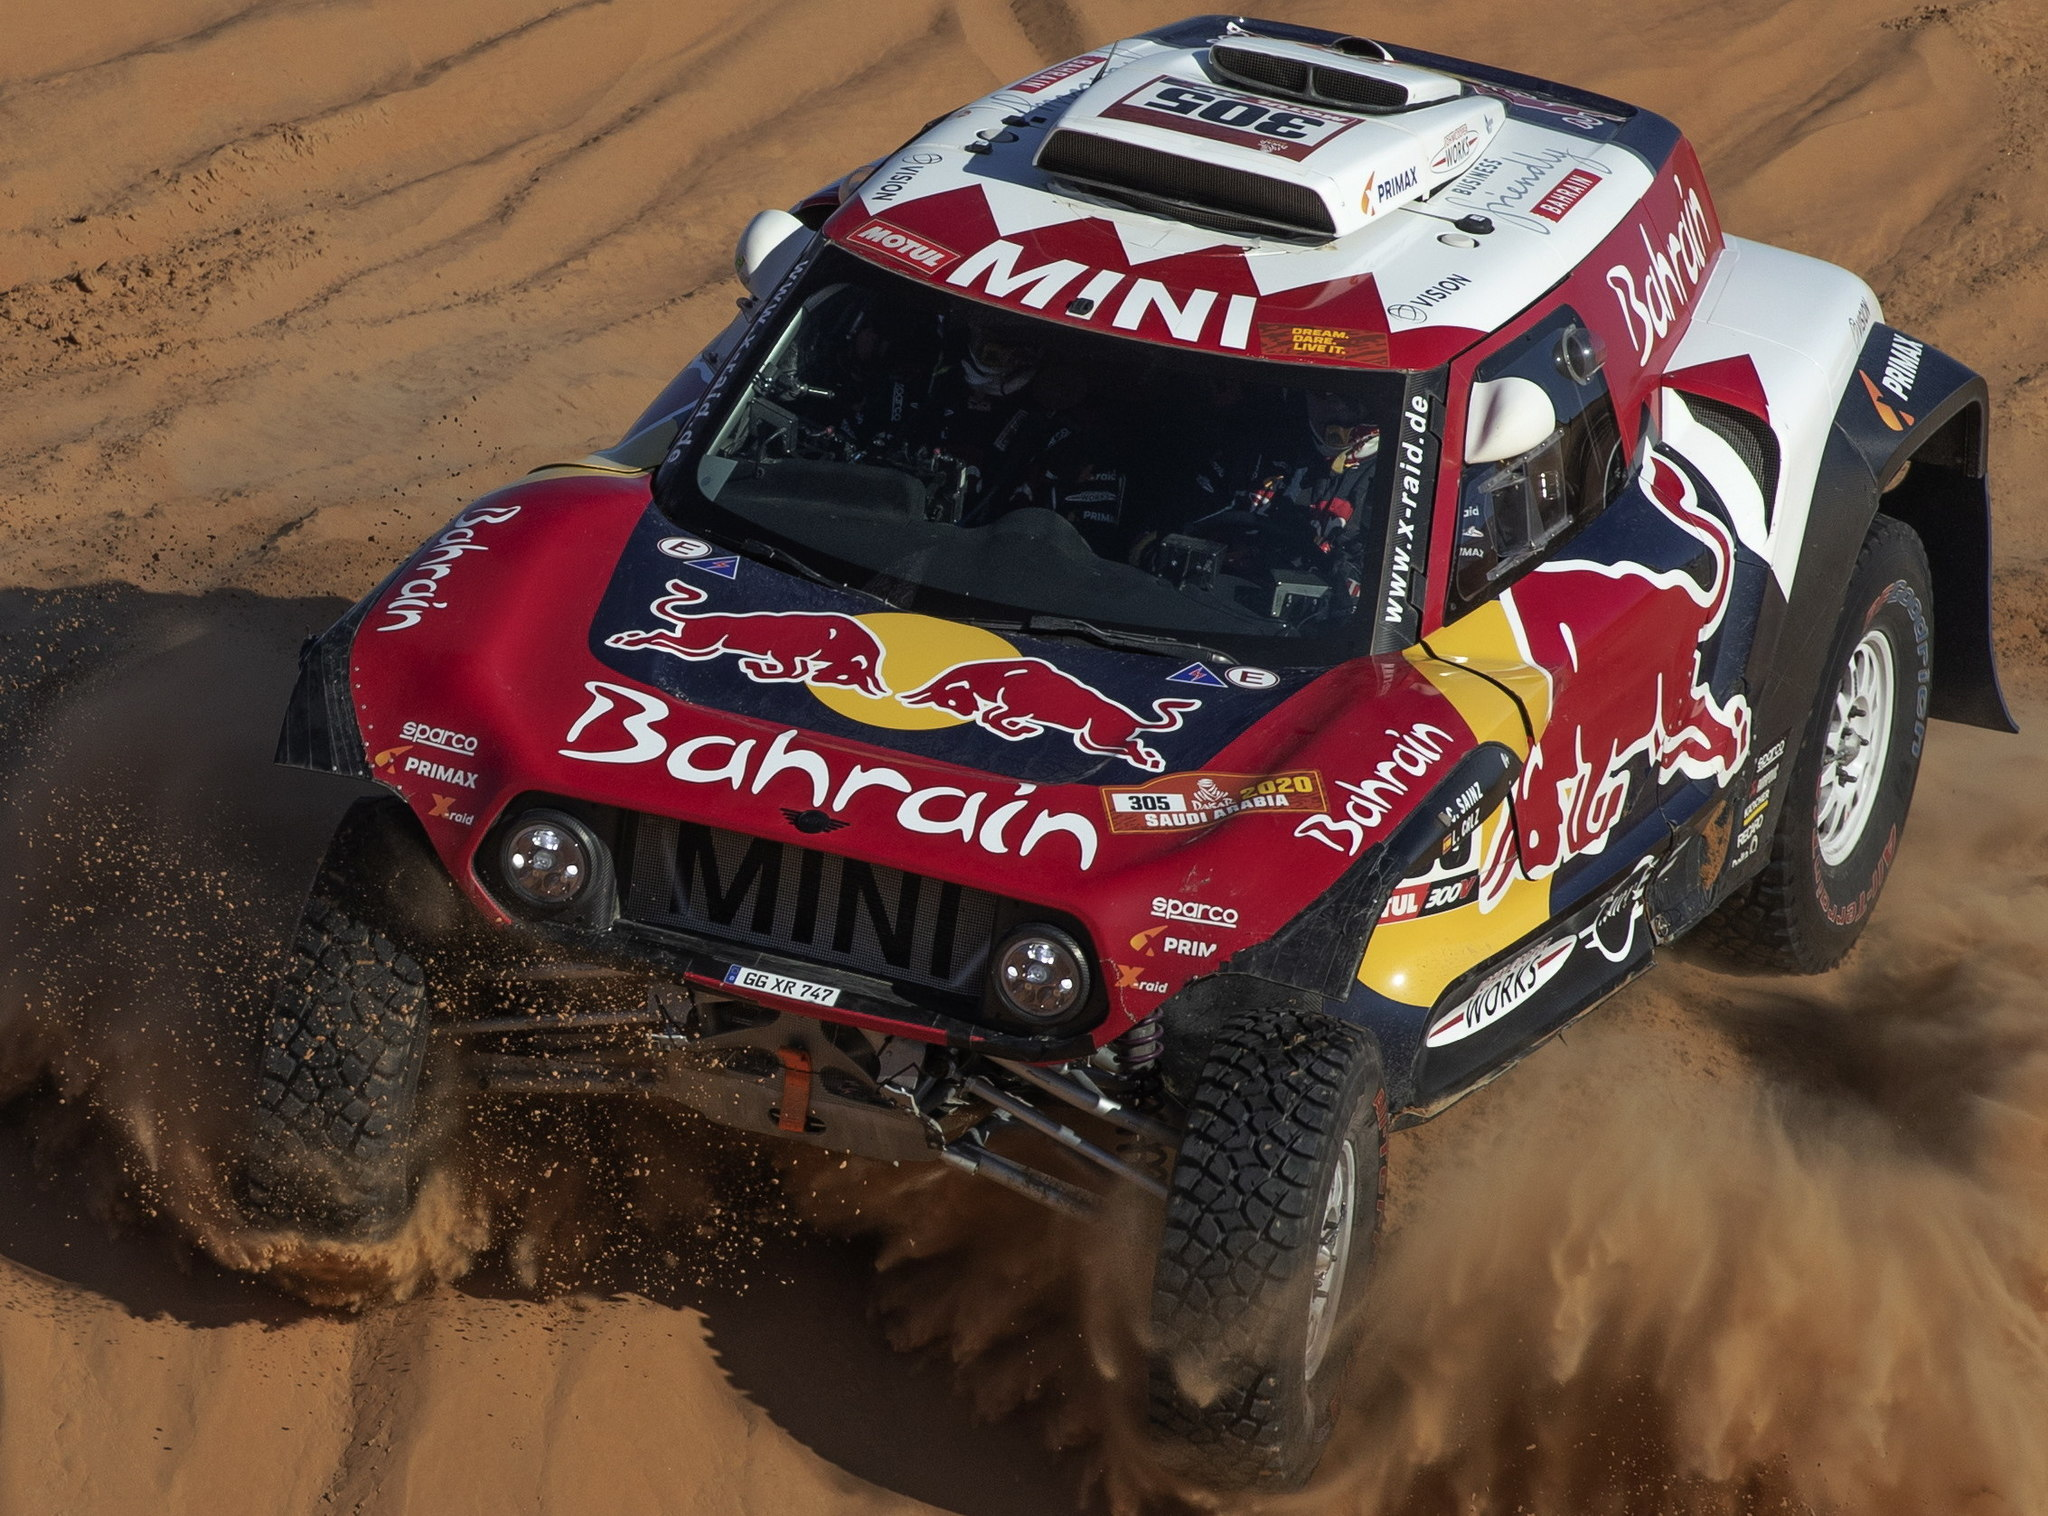 Haradh (Saudi Arabia), 16/01/2020.- Carlos <HIT>Sainz</HIT> of Spain in action during the stage eleven of the Rally Dakar 2020 between Shubaytah and Haradh in Saudi Arabia, 16 January 2020. The Rally Dakar takes place in Saudi Arabia from 05 to 17 January 2020. (Arabia Saudita, España) EFE/EPA/ANDRE PAIN